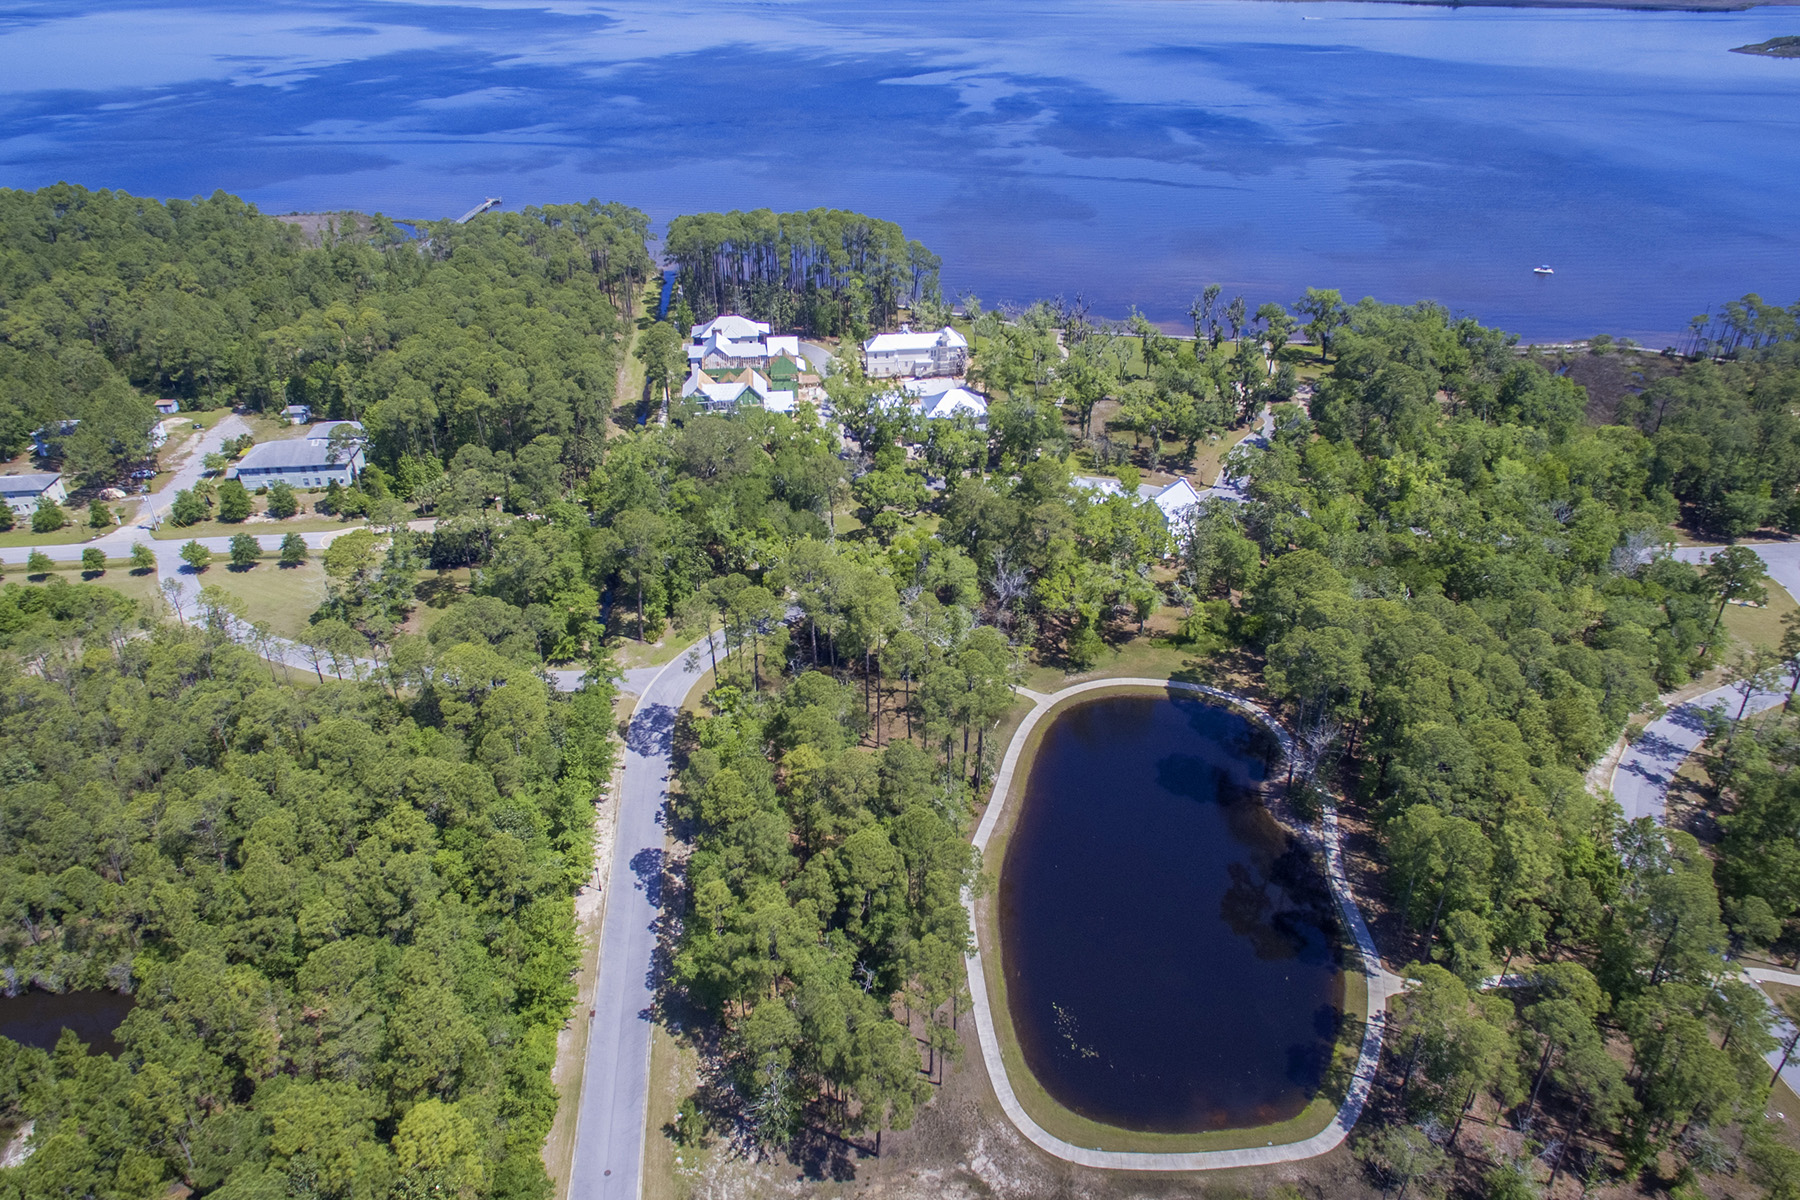 Land for Sale at LAKEFRONT LIVING IN CHURCHILL OAKS Lot 34 Tyler, Santa Rosa Beach, Florida, 32459 United States